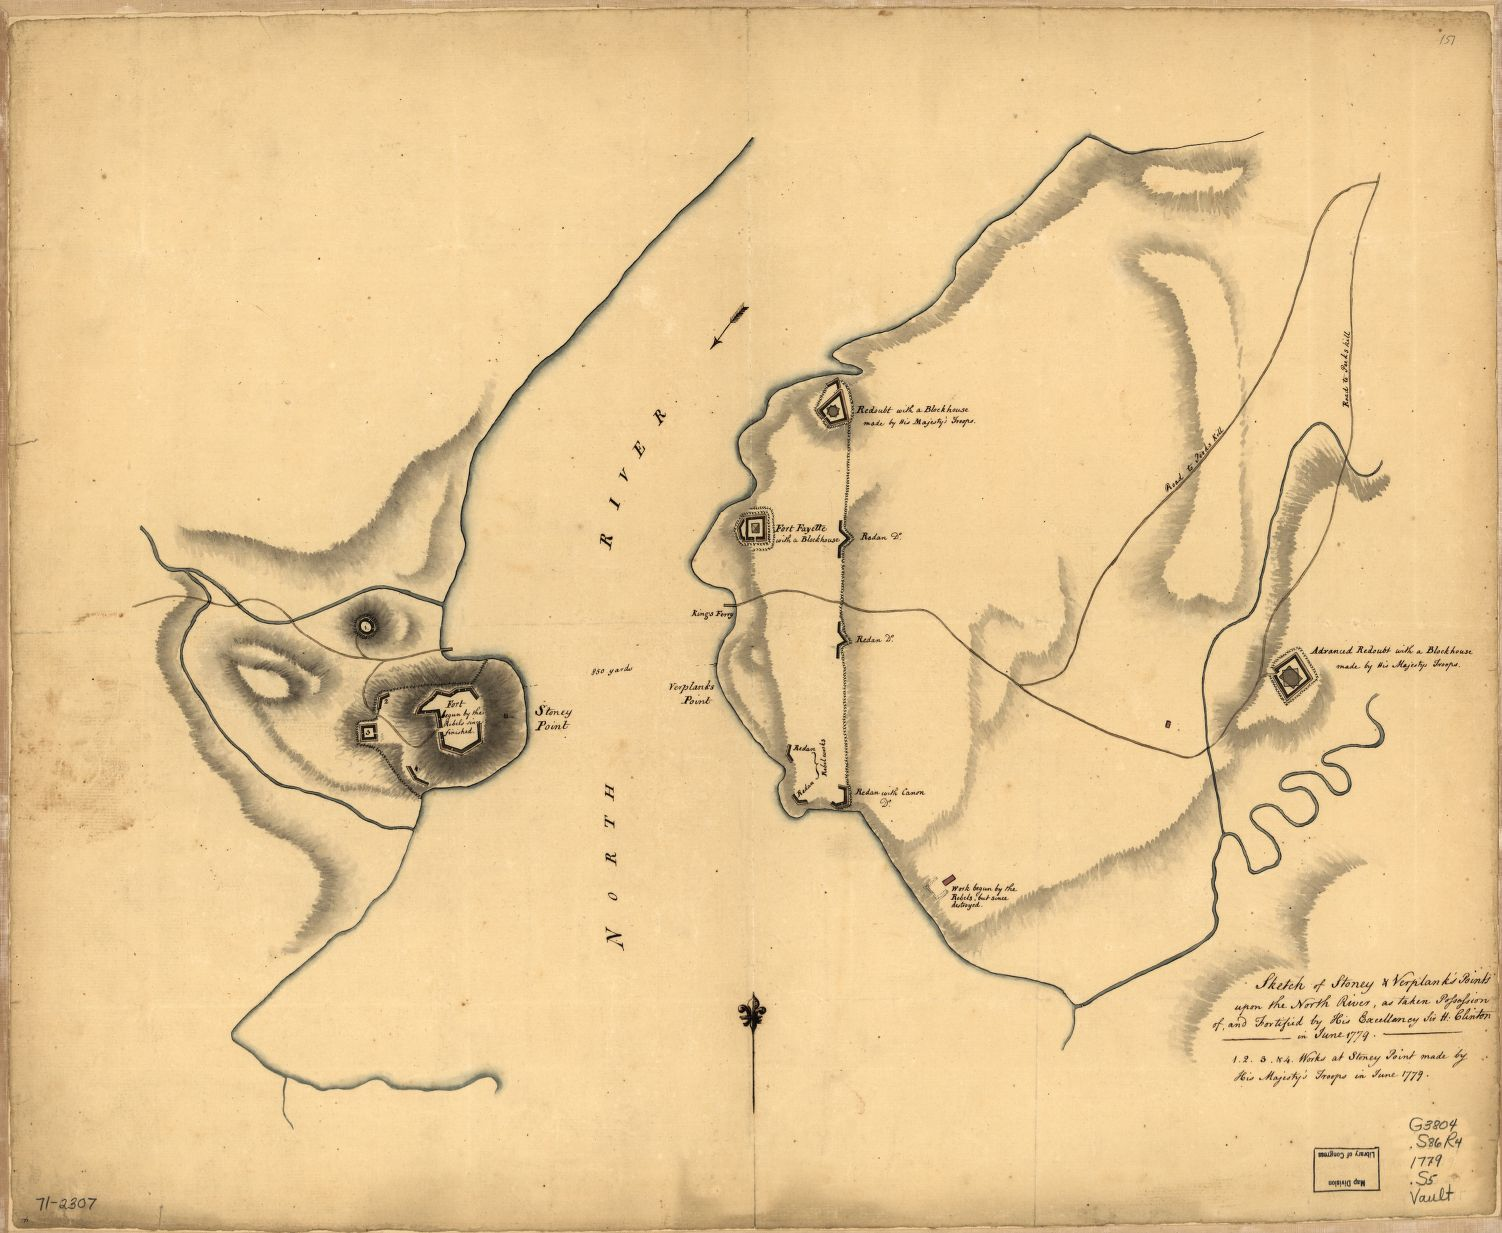 This map details the initial American fortifications at Stony and Verplank's Points along with British additions - Sketch of Stoney & Verplank's Points upon the North River, as taken possession of, and fortified by His Excellency Sir H: Clinton in June 1779, [G3804.S86R4 1779 .S5]. Courtesy Library of Congress, Washington, D.C.